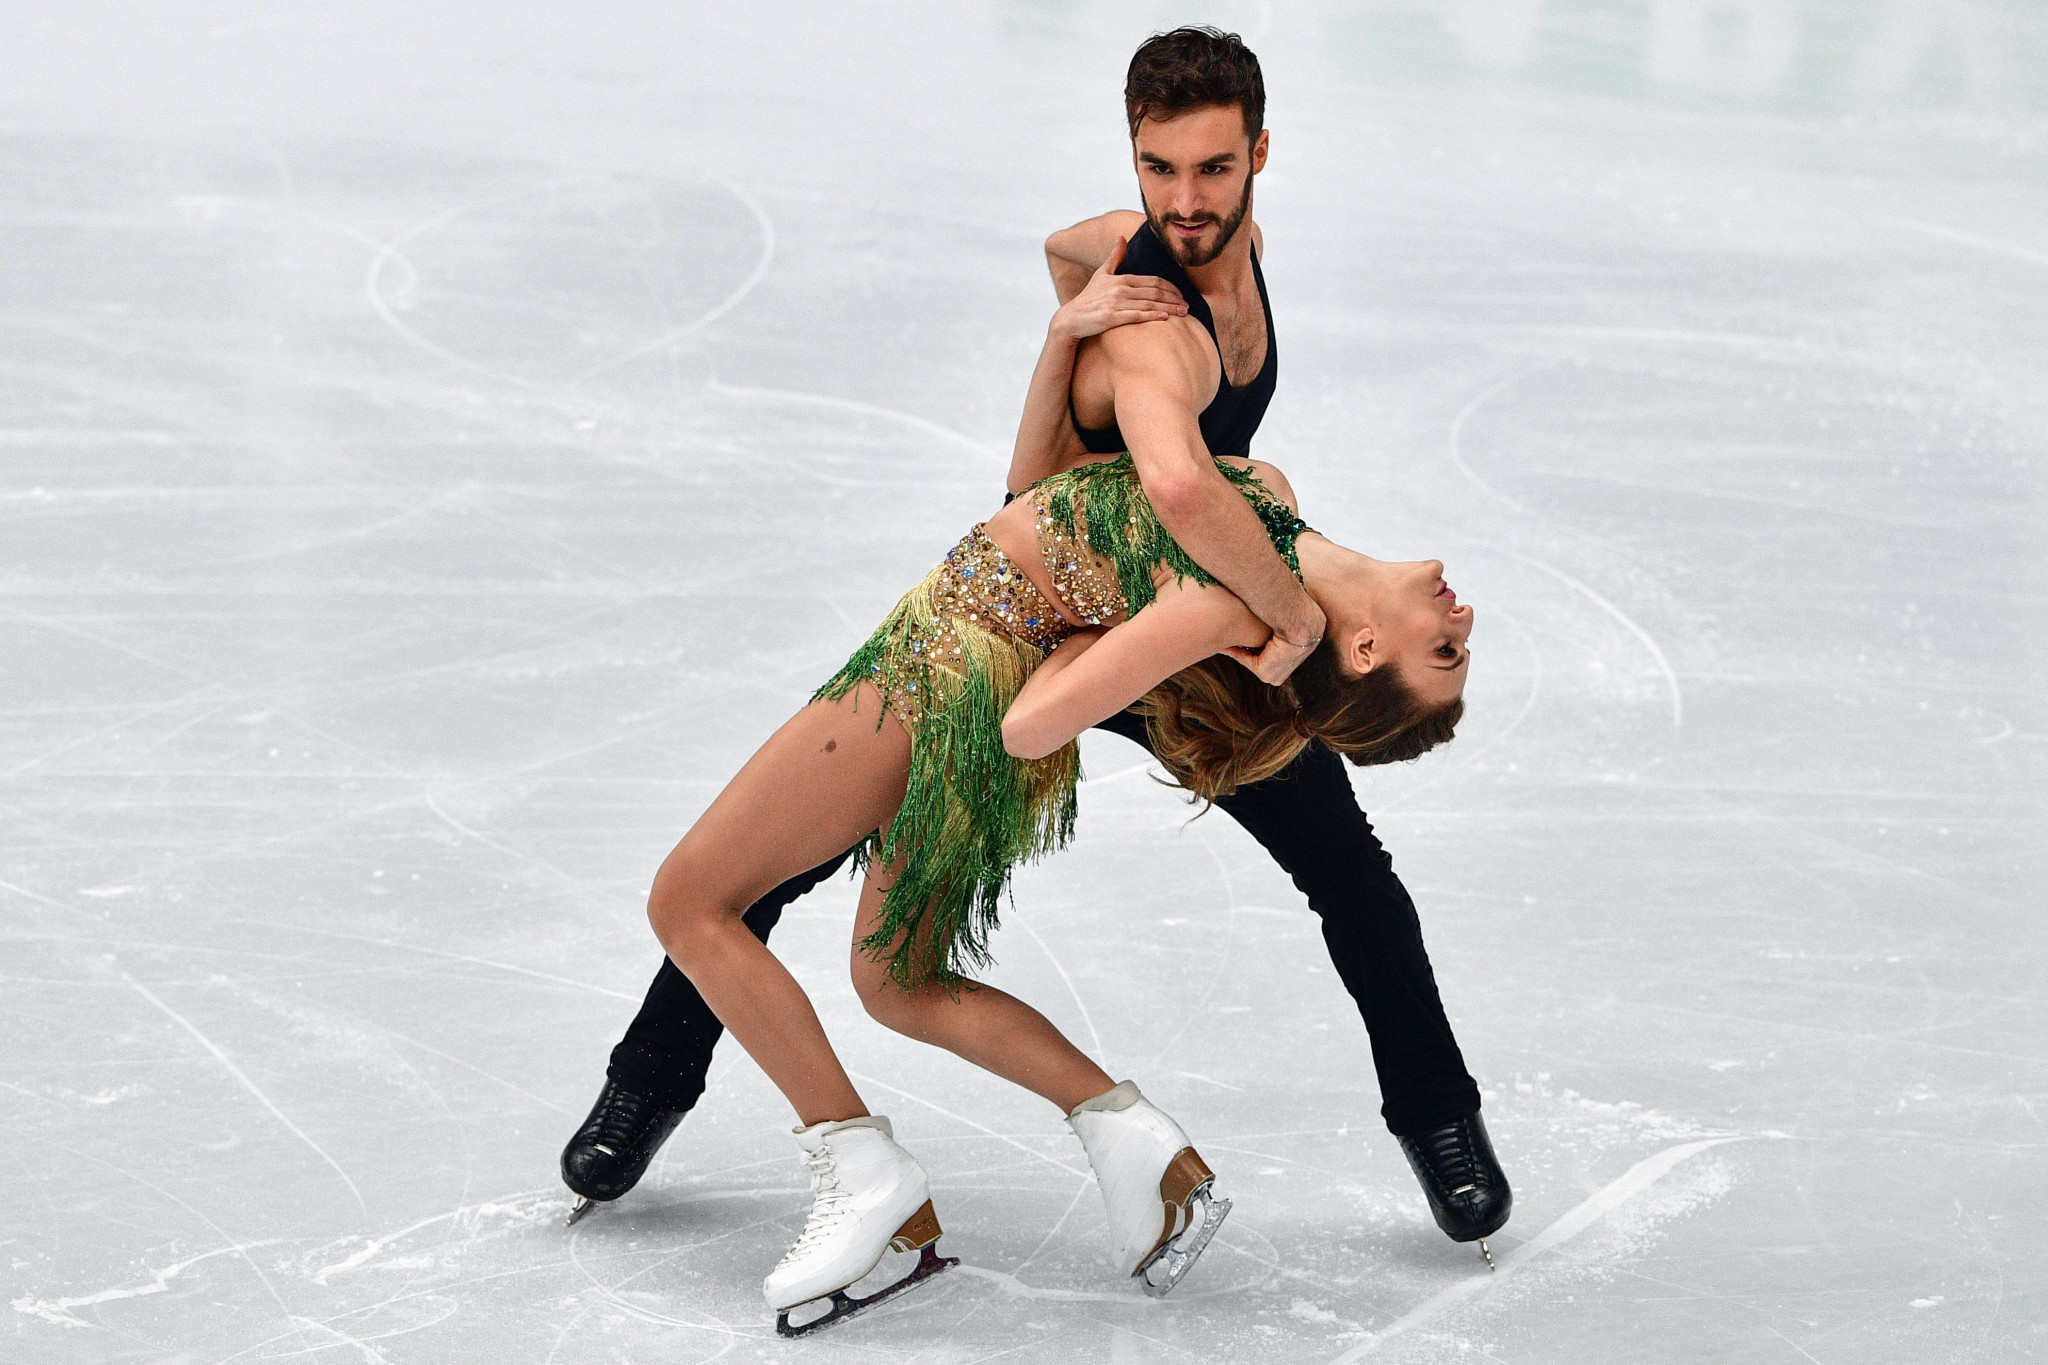 French pair Gabriella Papadakis and Guillaume Cizeron took control of the ice dance competition on day three of the ISU European Figure Skating Championships ©Getty Images